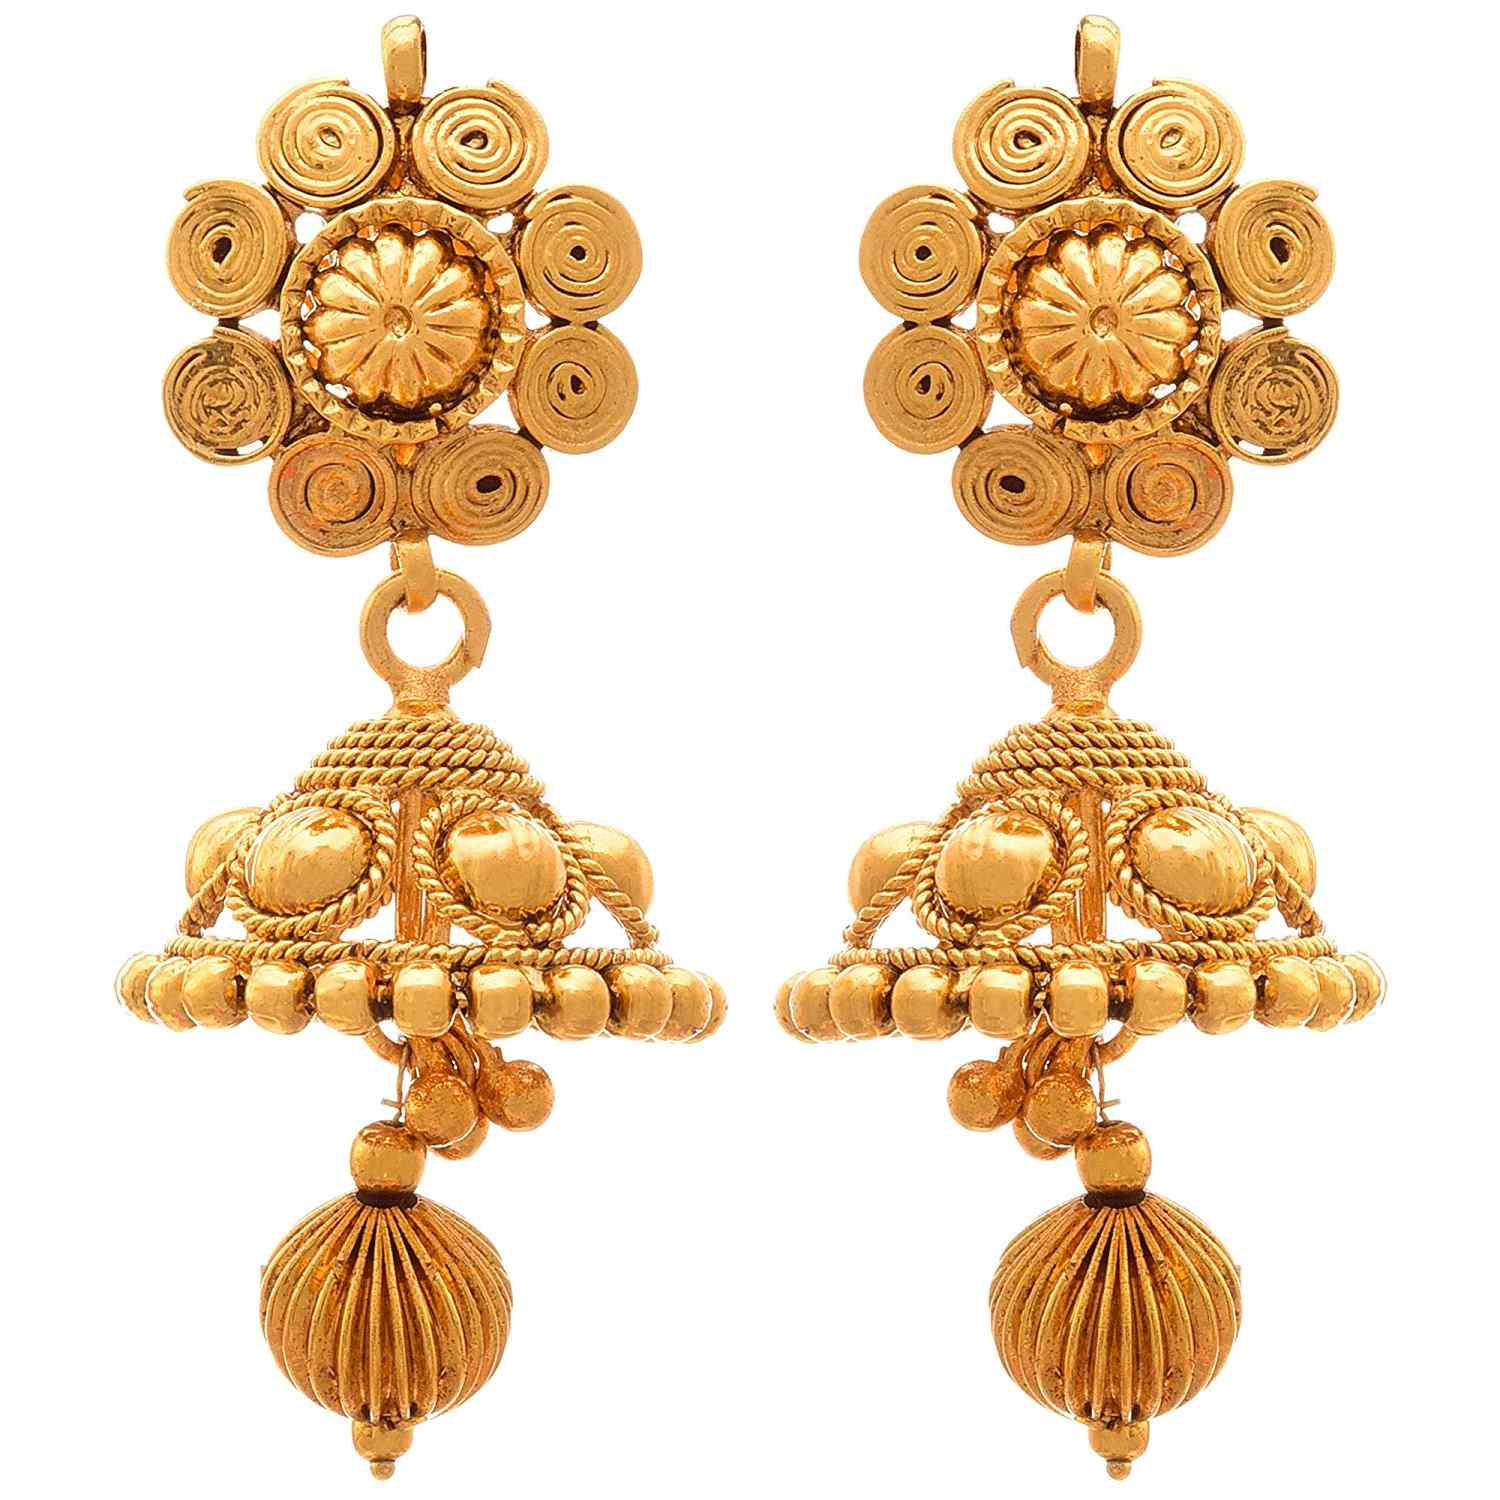 JFL - Jewellery For Less Traditional Ethnic Spiral Floral Flower One Gram Gold Plated Pendant Set With Jhumka Earrings For Women